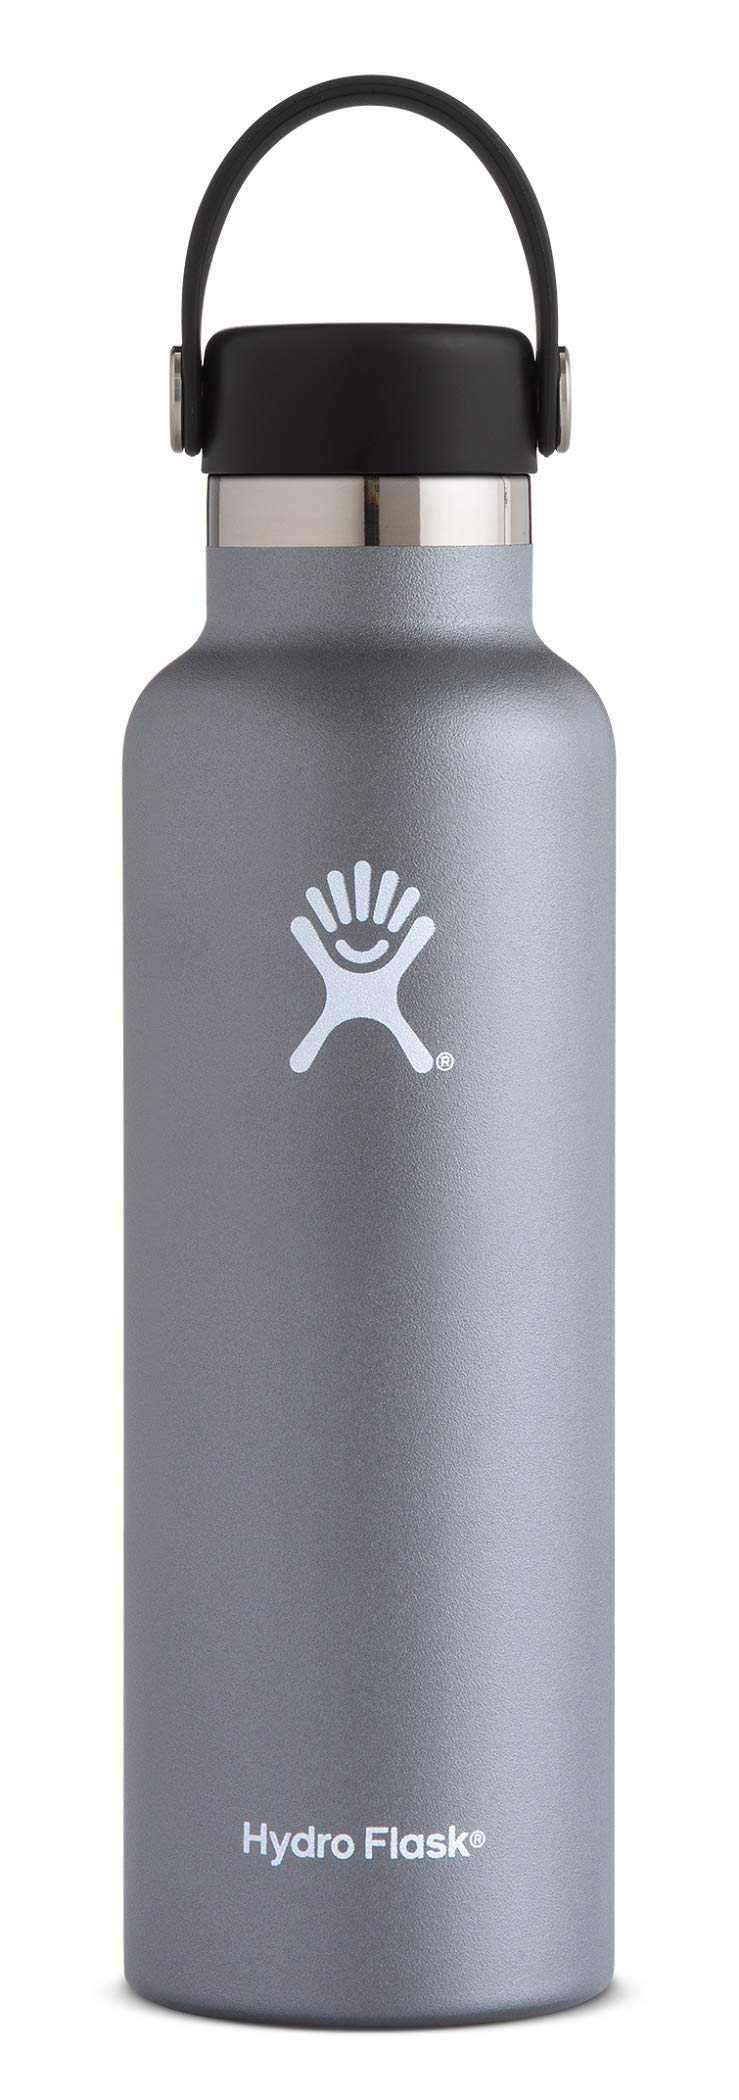 Hydro Flask Water Bottle - Stainless Steel & Vacuum Insulated - Standard Mouth with Leak Proof Flex Cap - 21 oz, Graphite by Hydro Flask